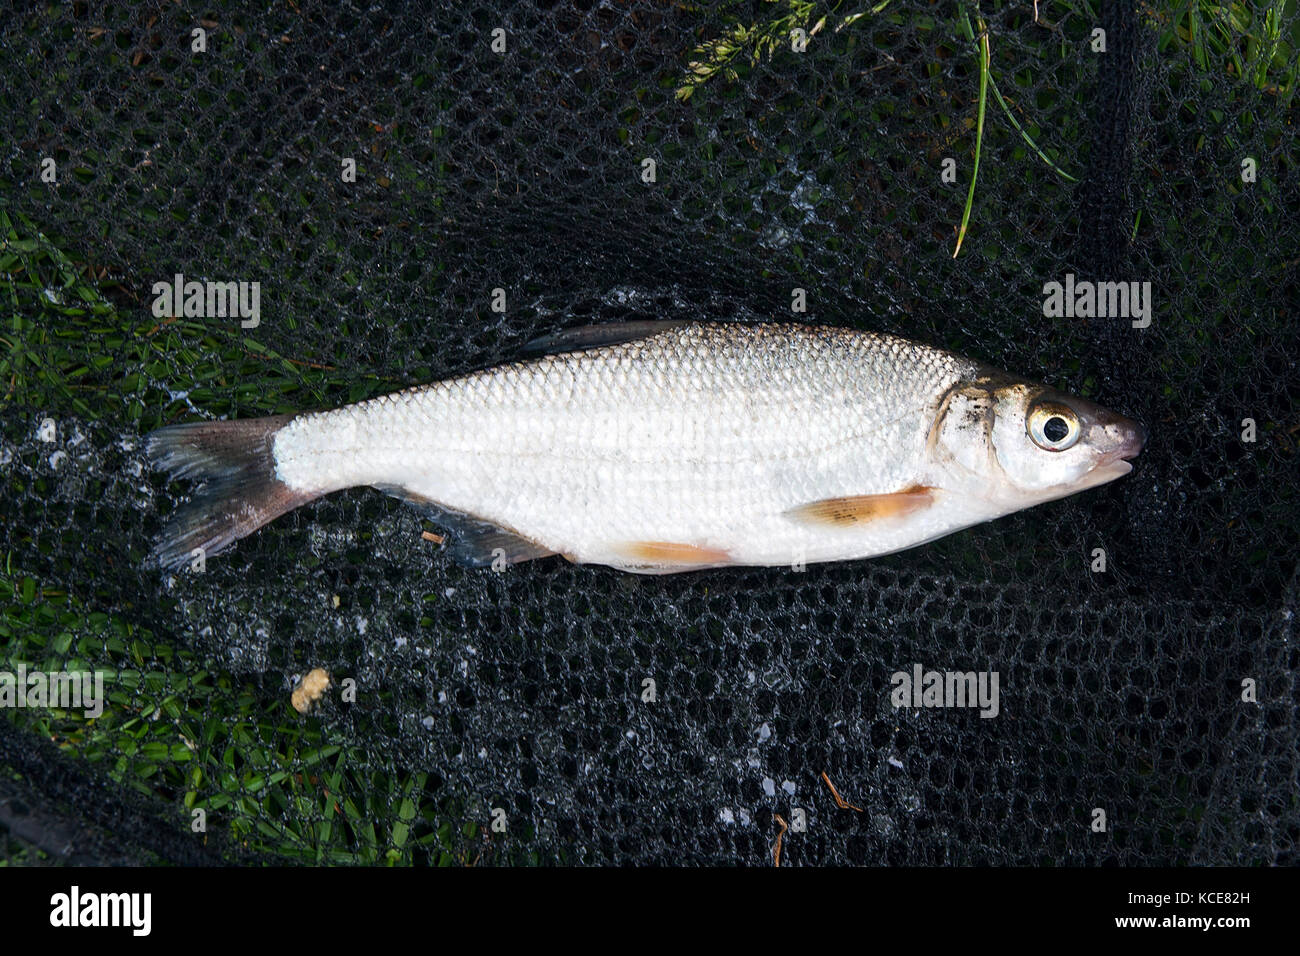 Close up view of just taken from the water freshwater common nase fish known as European potamodromous cyprinid Stock Photo